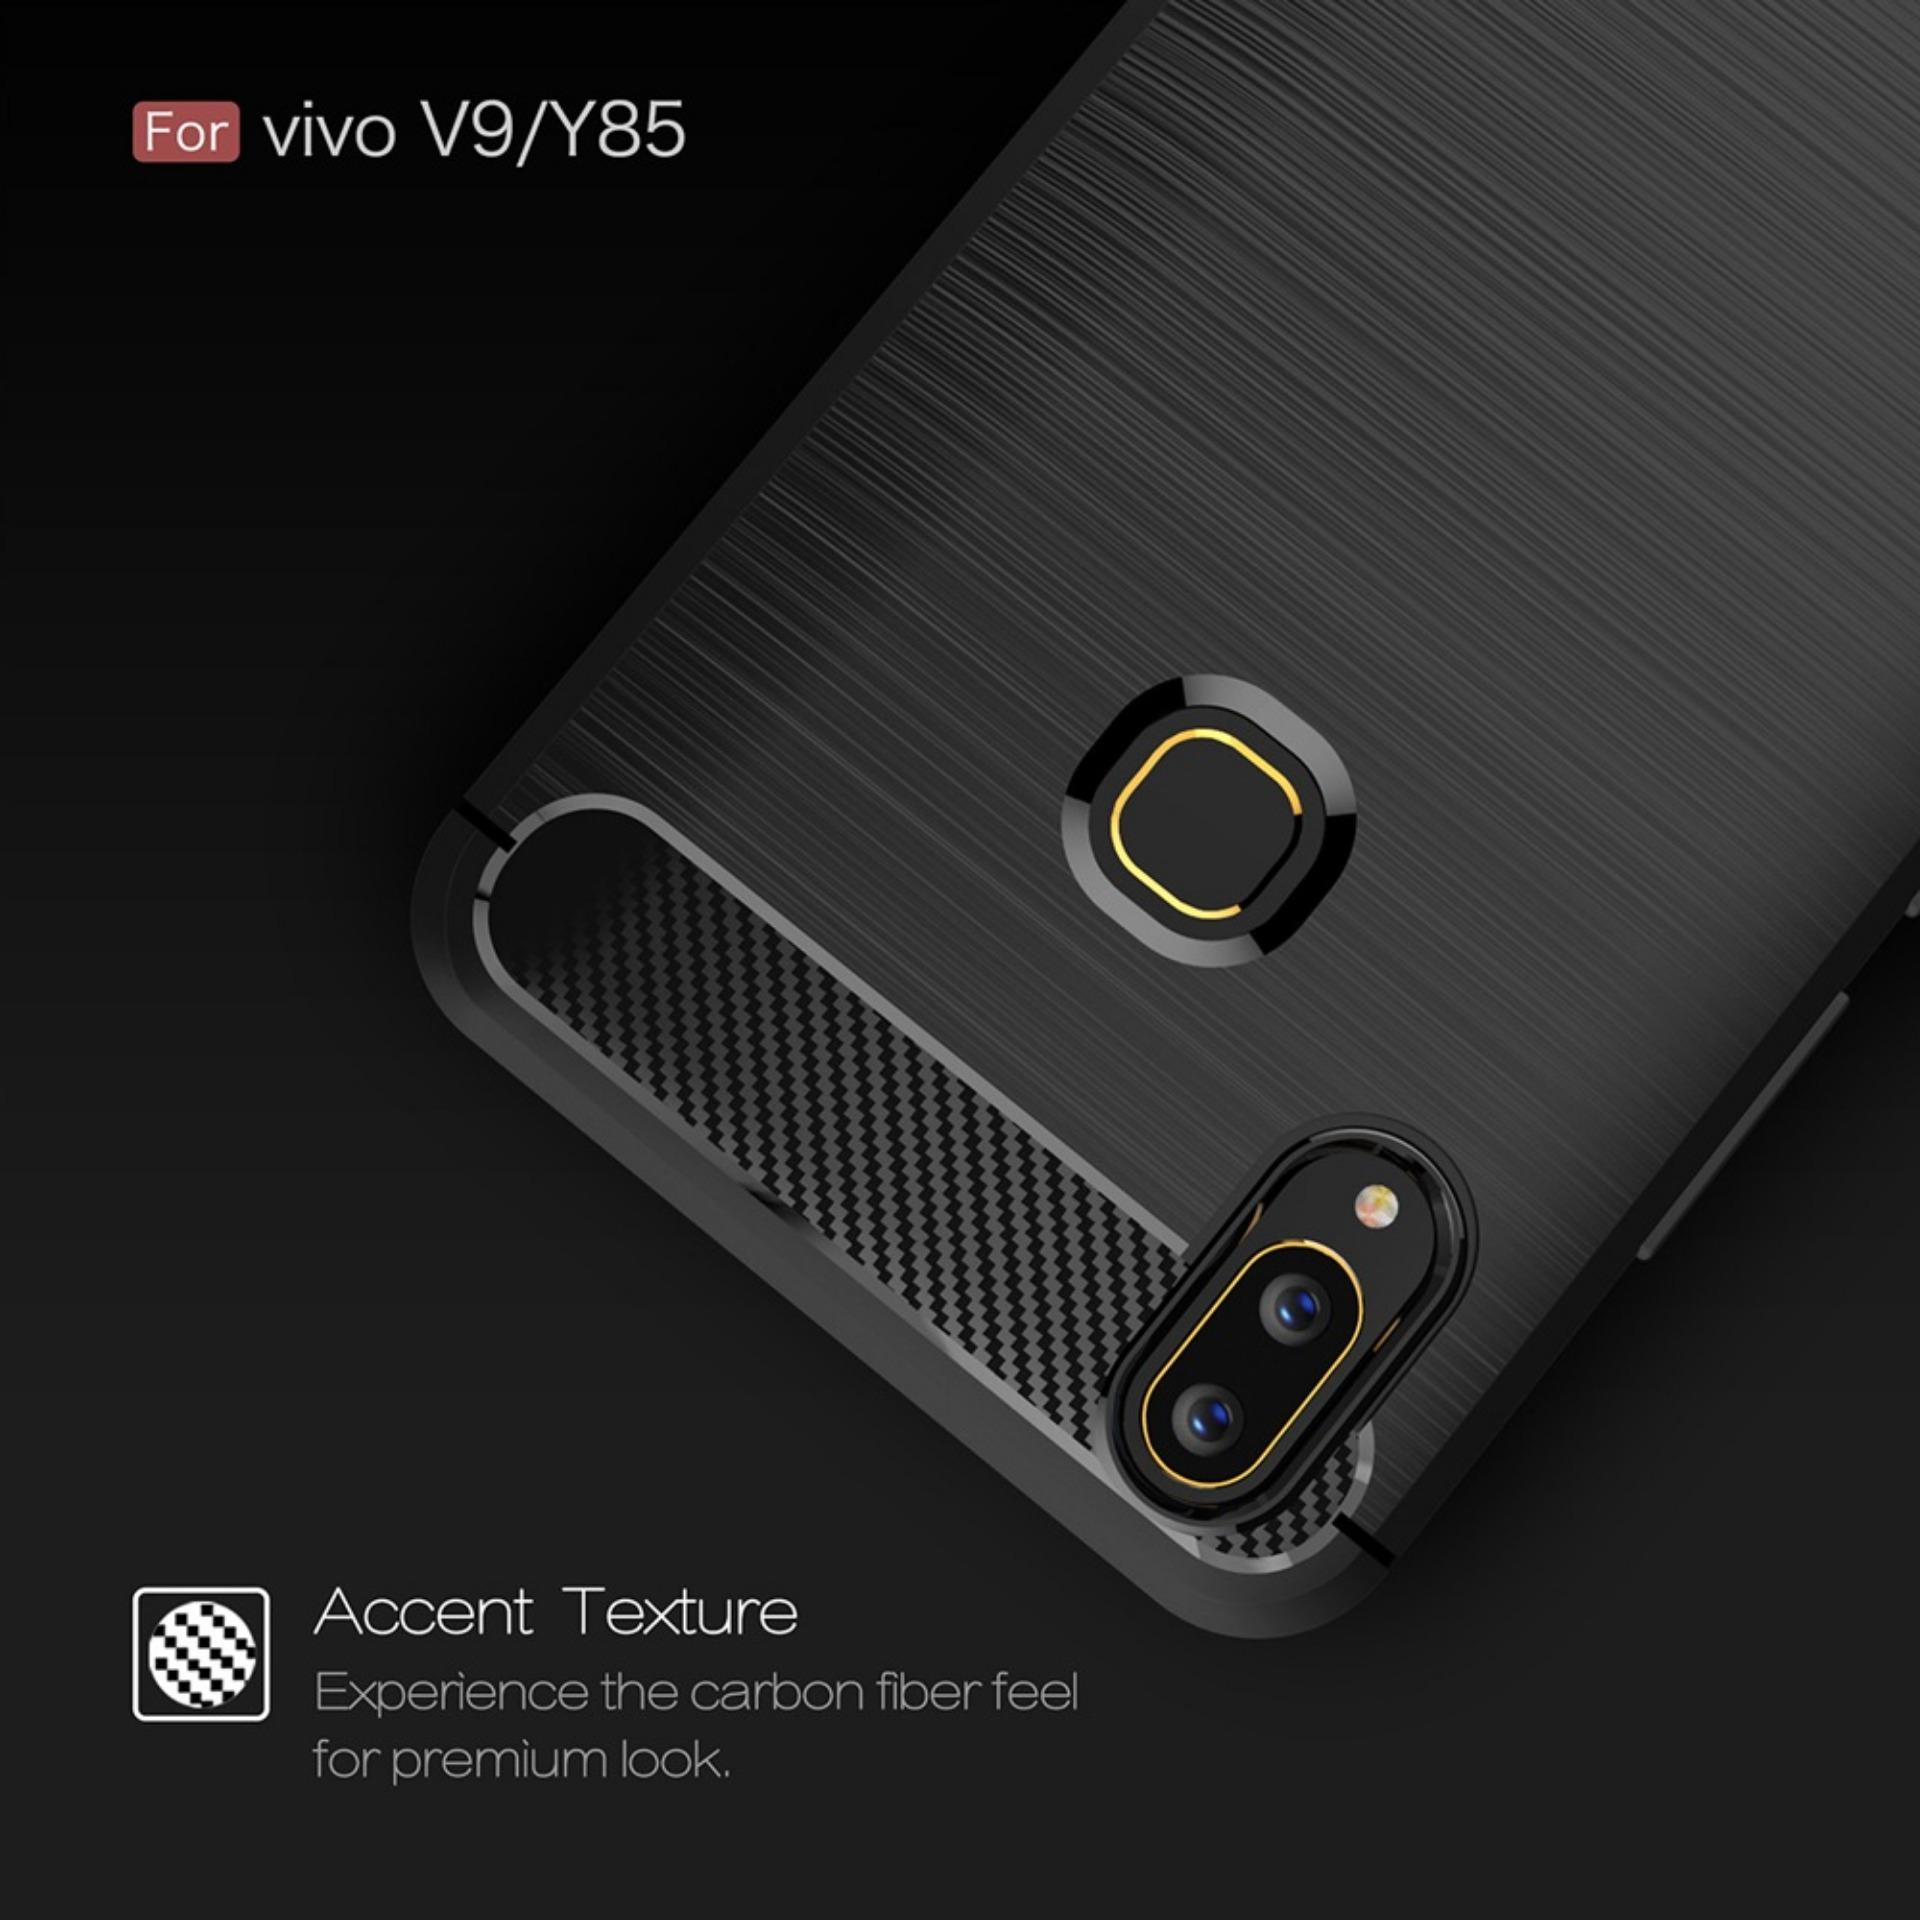 Kelebihan Caselova Premium Quality Carbon Shockproof Hybrid Case For Motorola Moto G5s Plus Tempered Glass Full Cover Black Dan Gold Vivo V9 Gratis